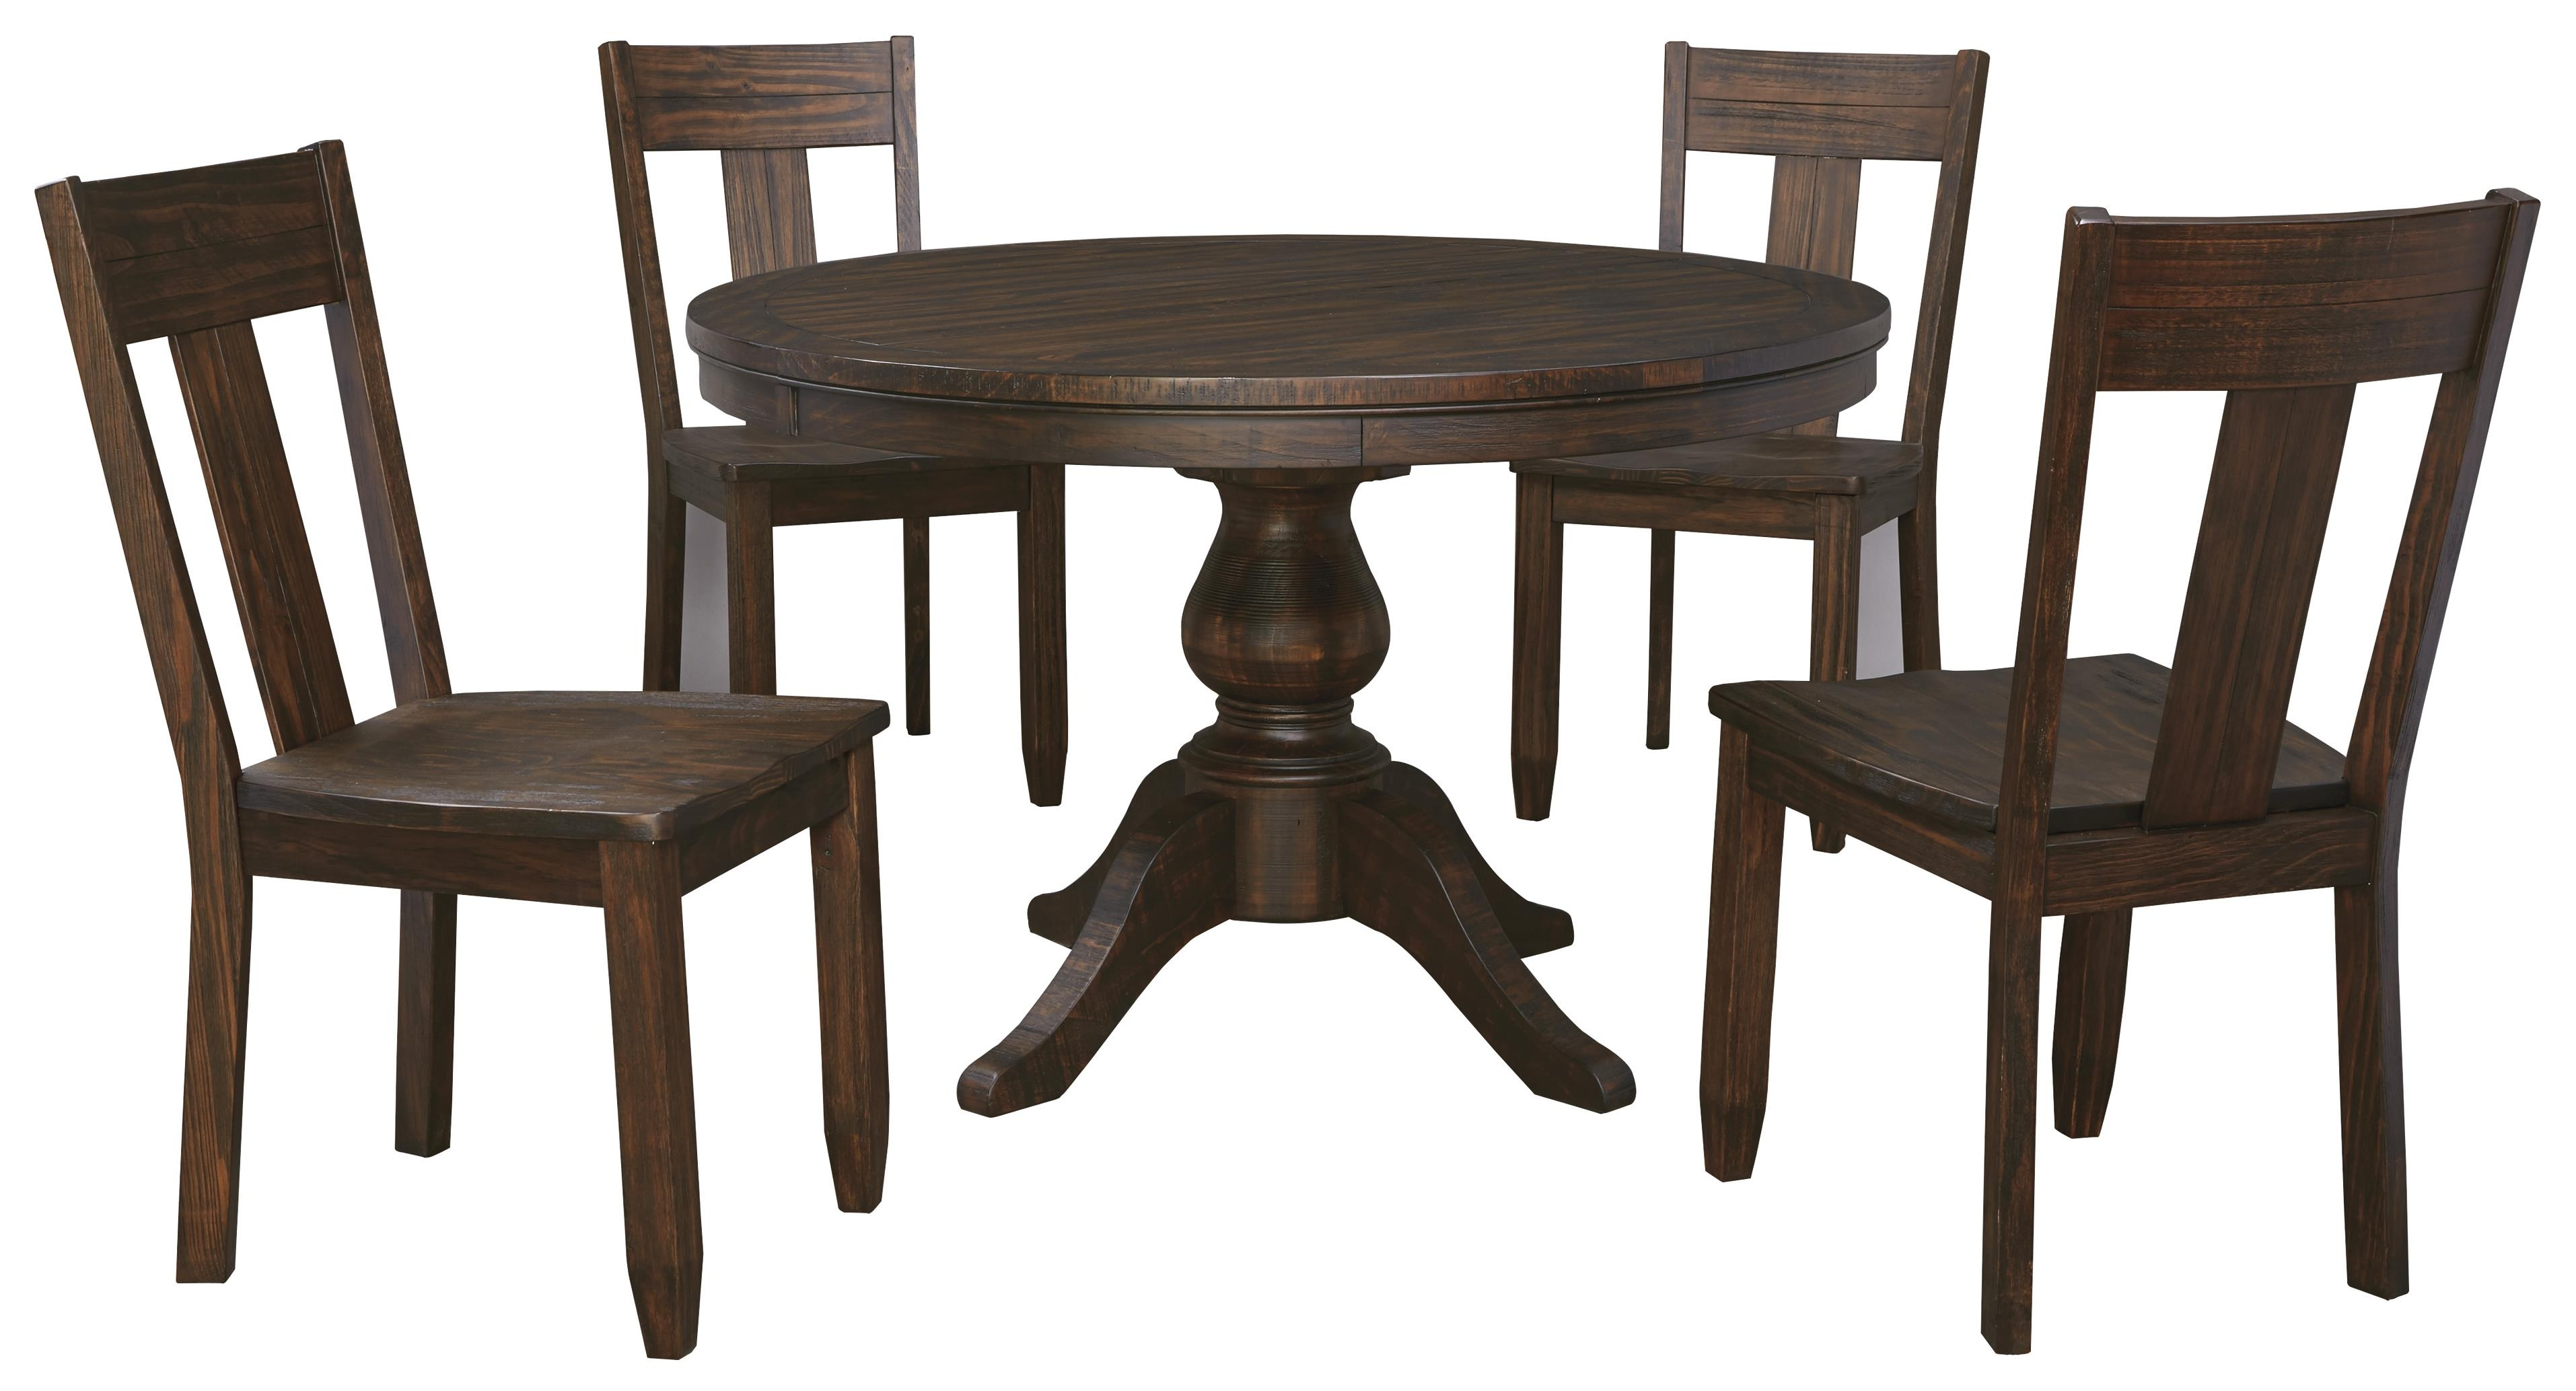 5 Piece Round Dining Table Set – Castrophotos Within Current Macie Round Dining Tables (View 20 of 20)